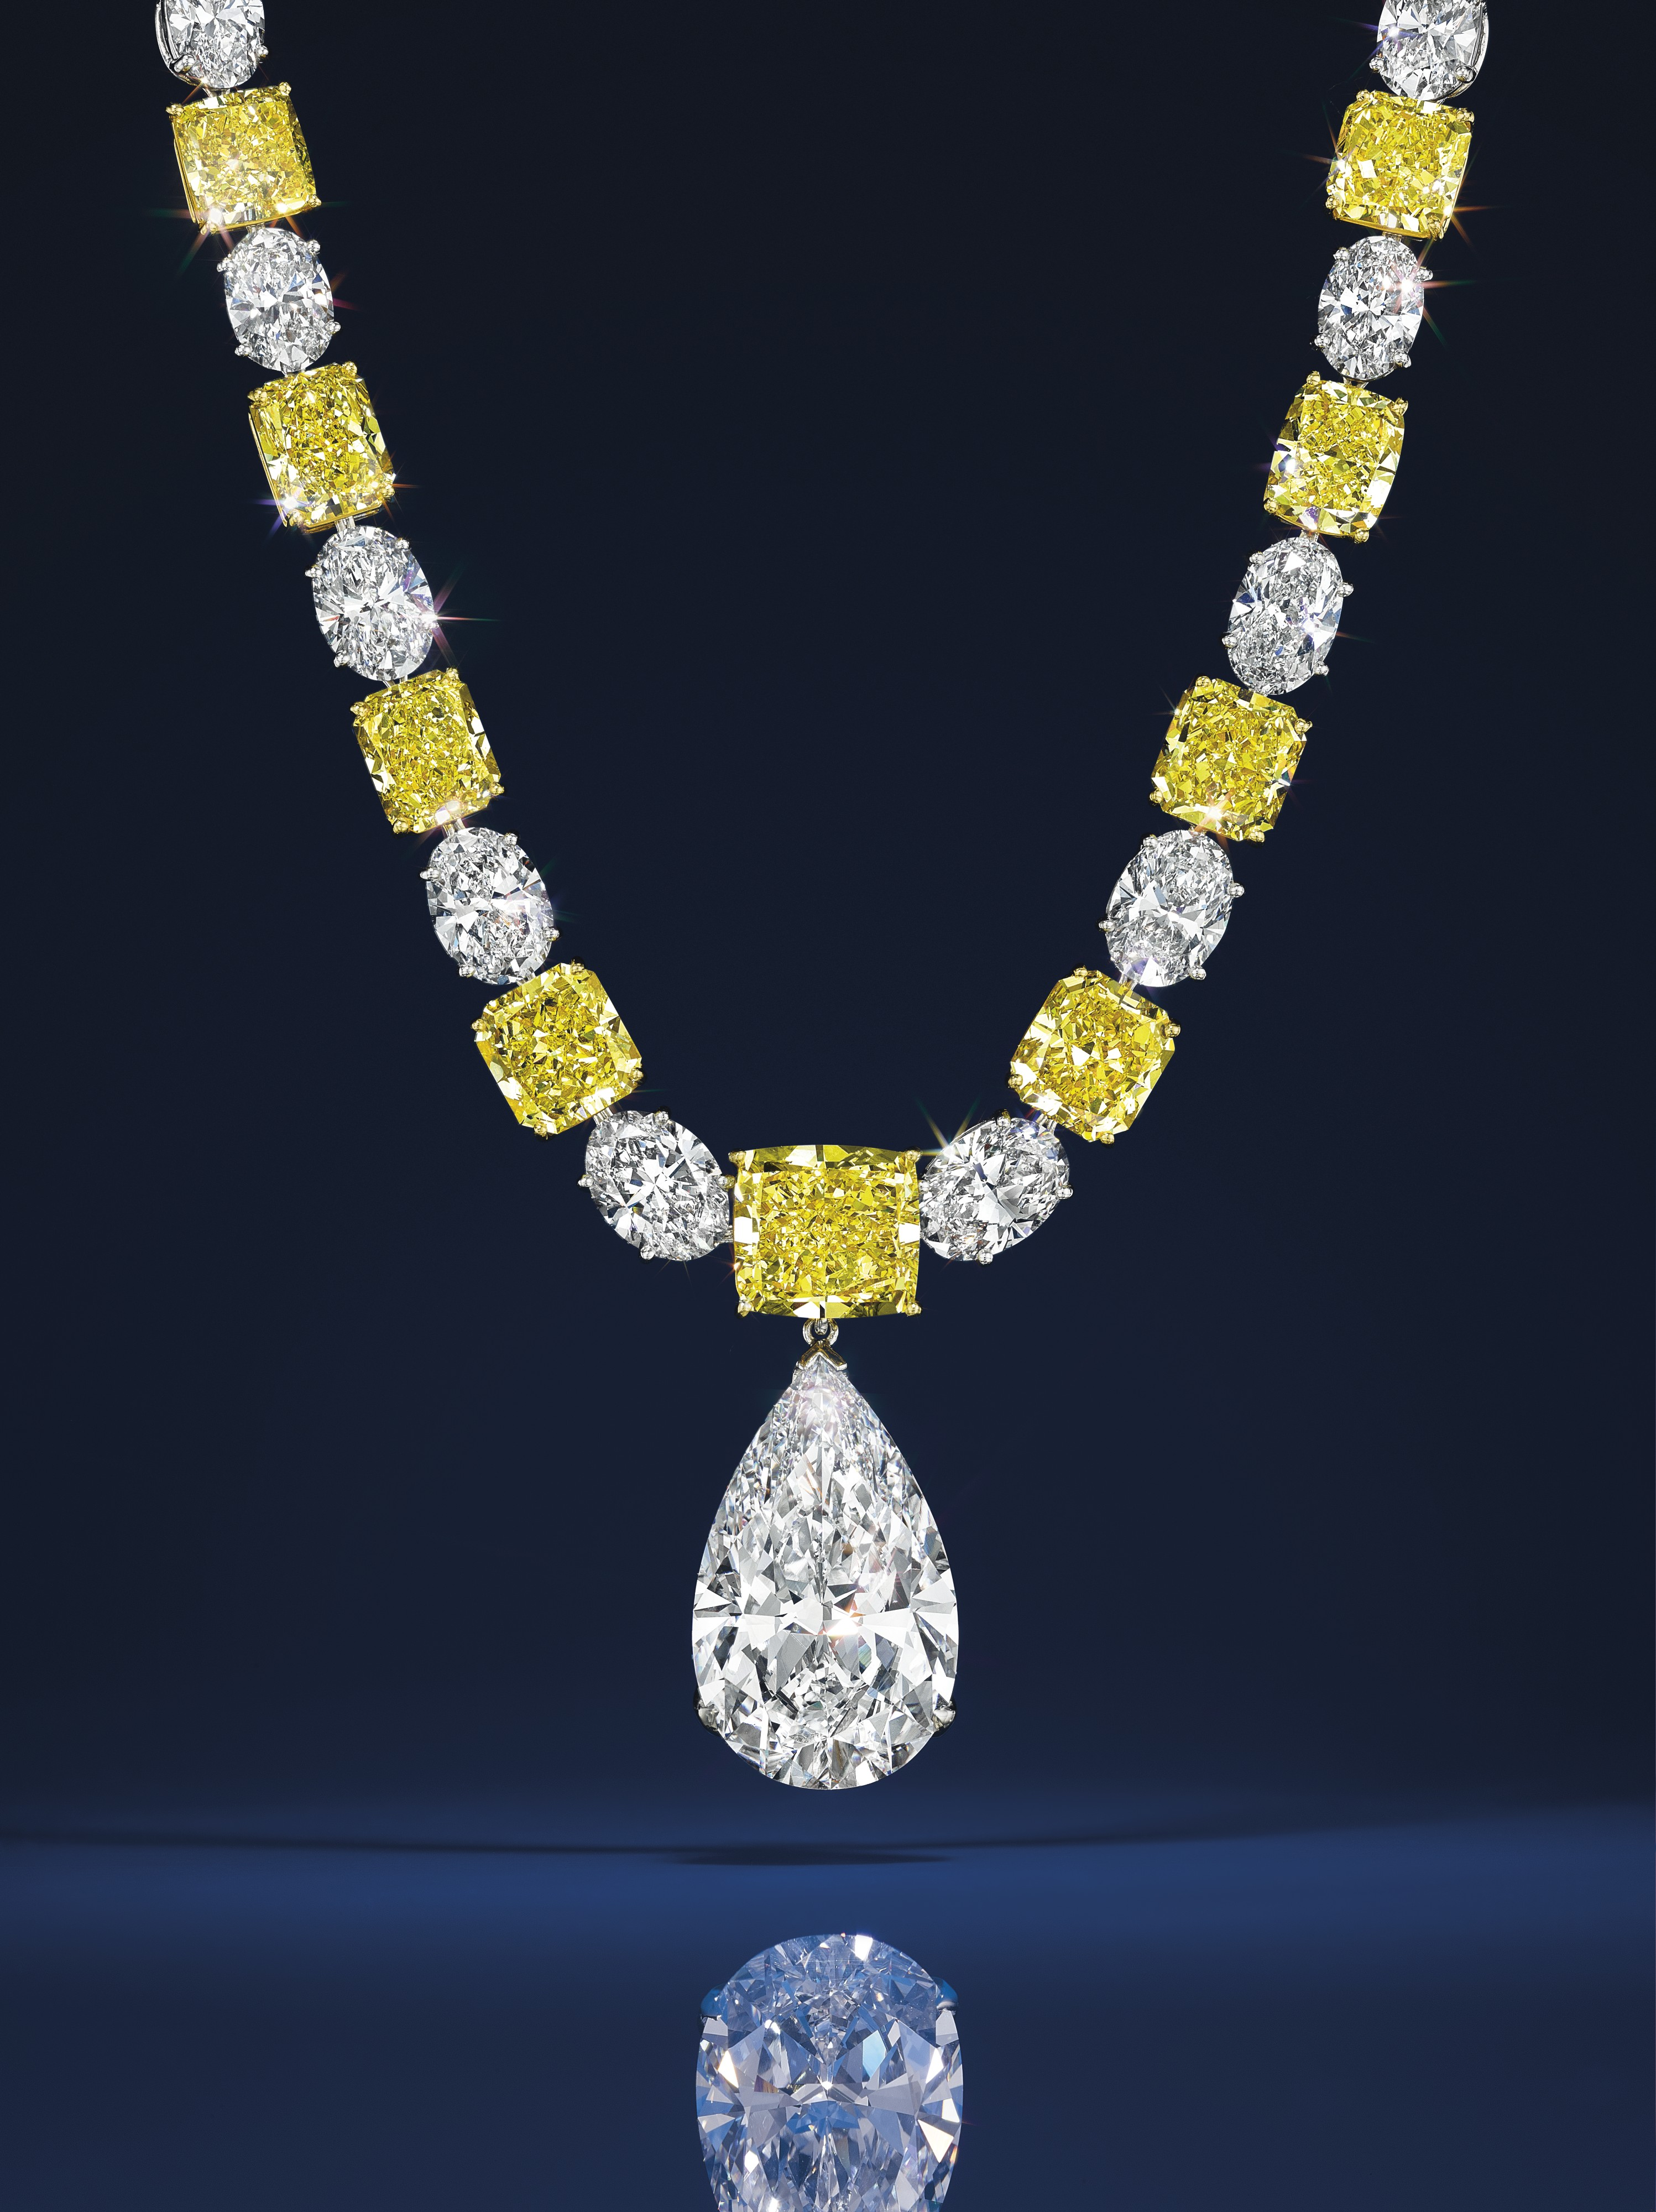 Auctions: Magnificent Jewels at Christie's New York on April 14 – Highlights